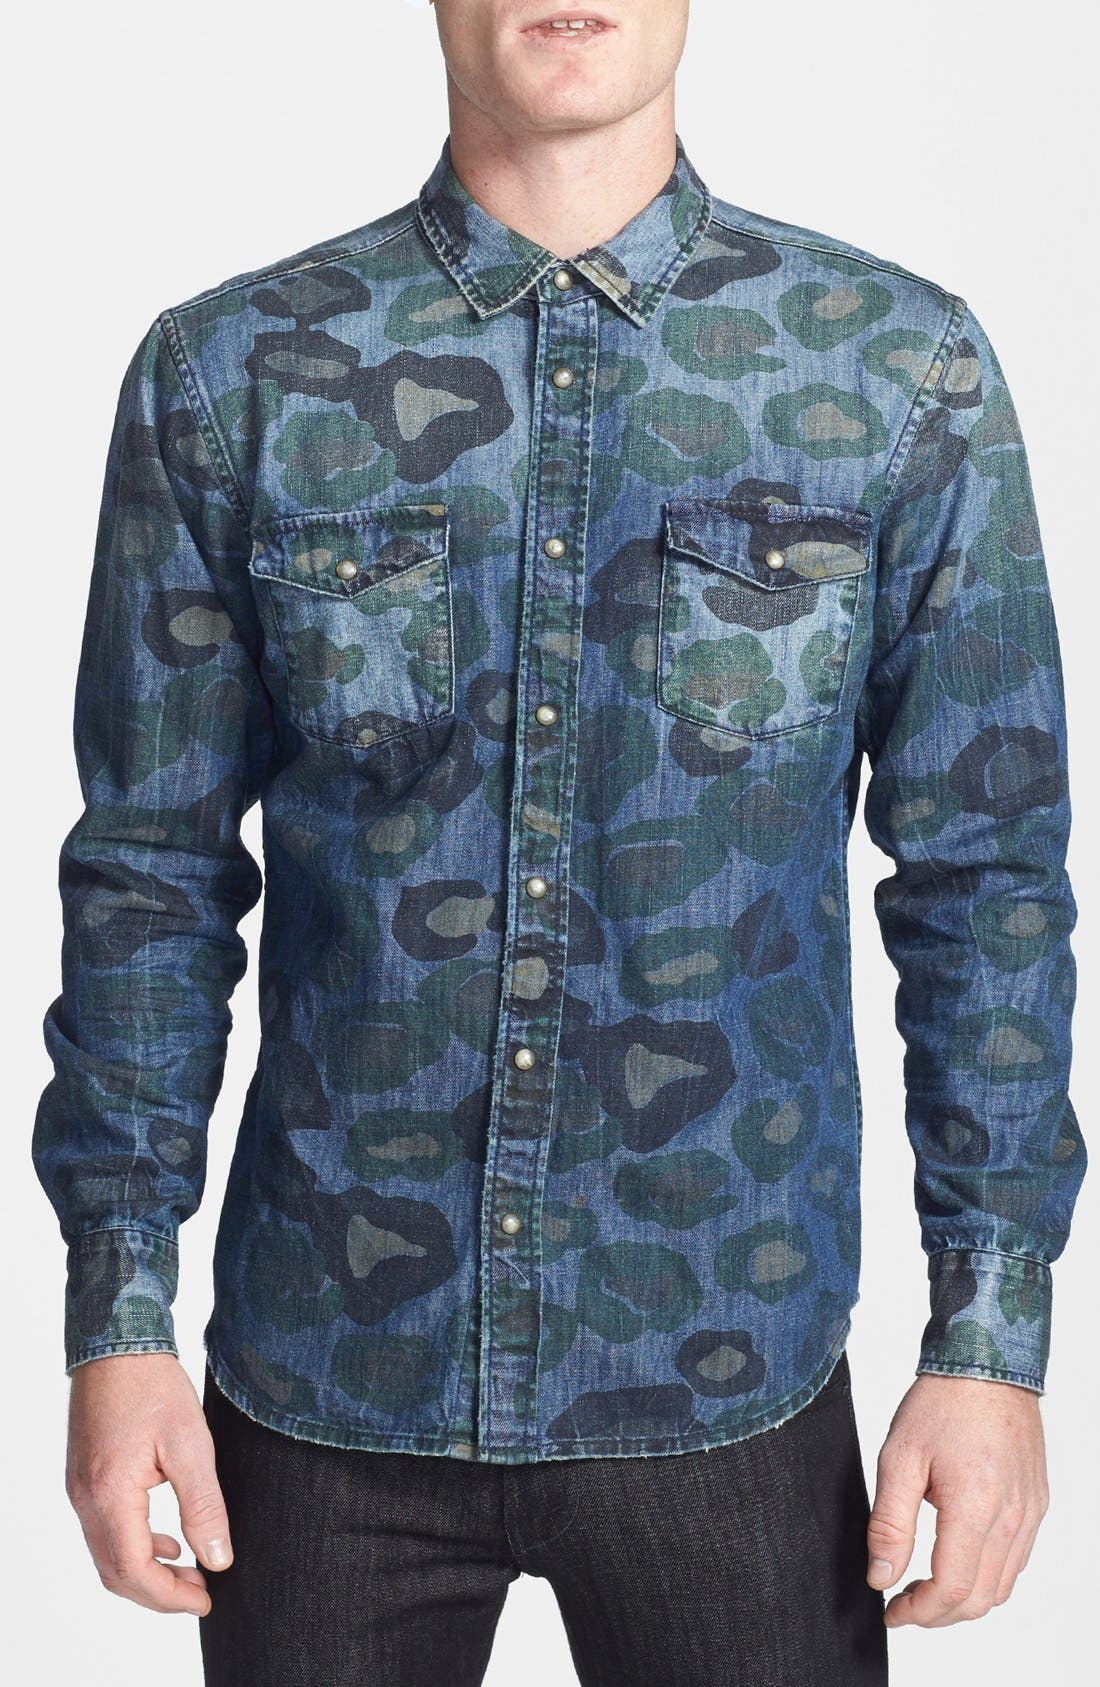 Alternate Image 1 Selected - ZANEROBE 'Cats with Guns' Camo Print Denim Shirt